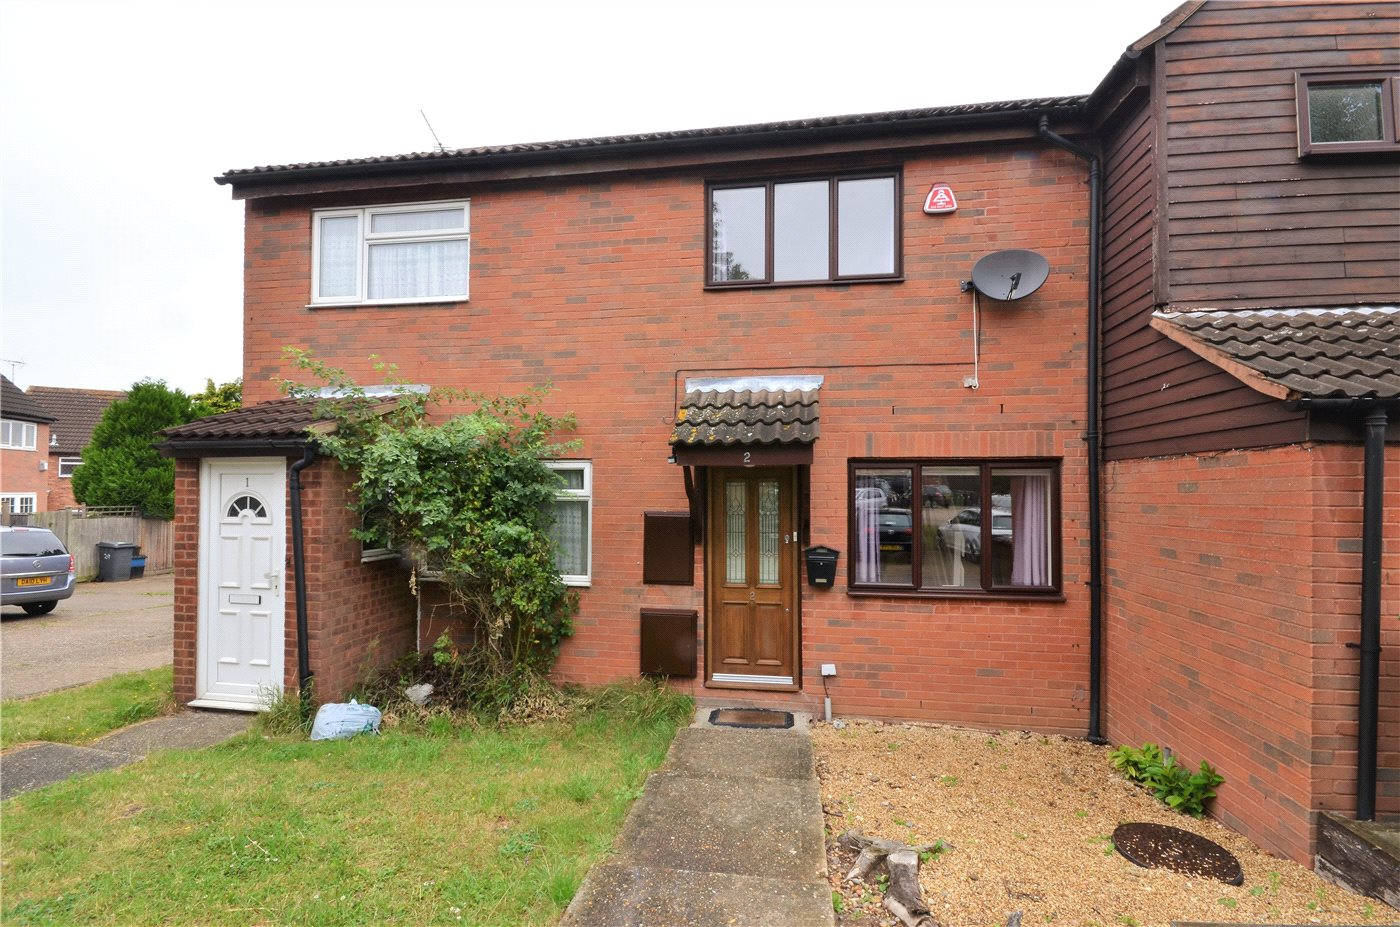 2 Bedrooms Terraced House for sale in Fox Close, Elstree, Borehamwood, Hertfordshire, WD6